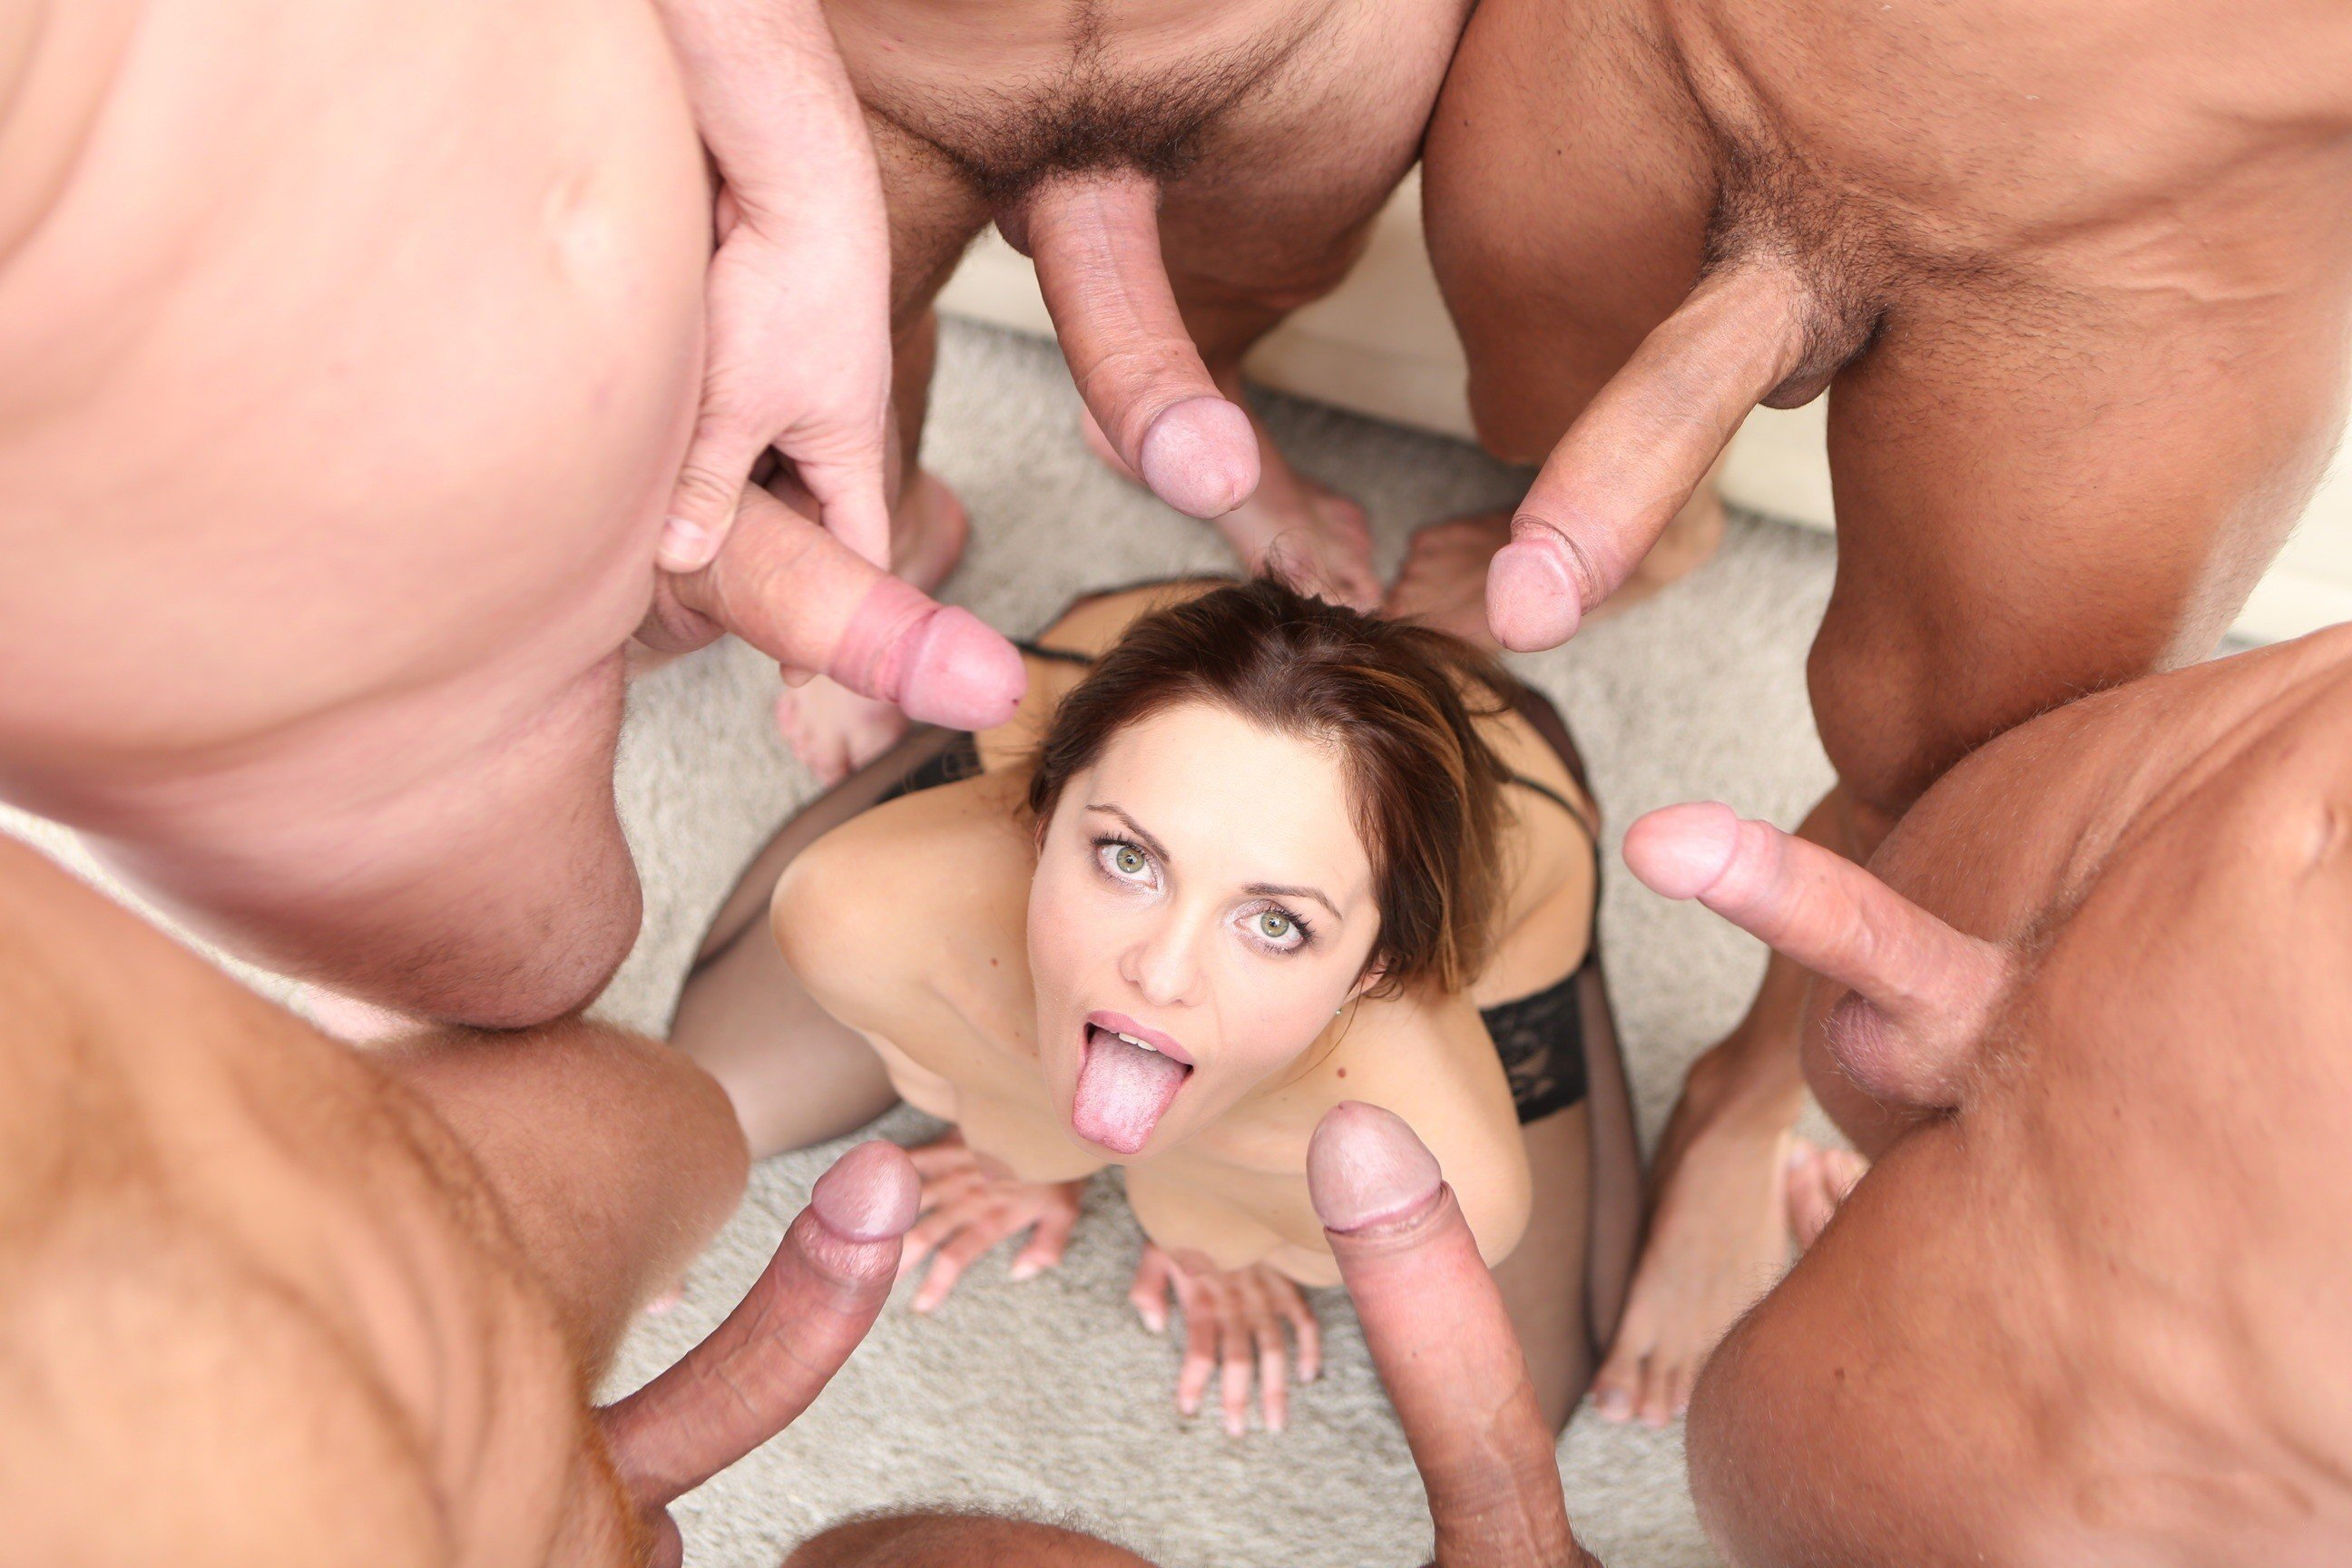 Teen brunette gang bang, handjob compilation videos